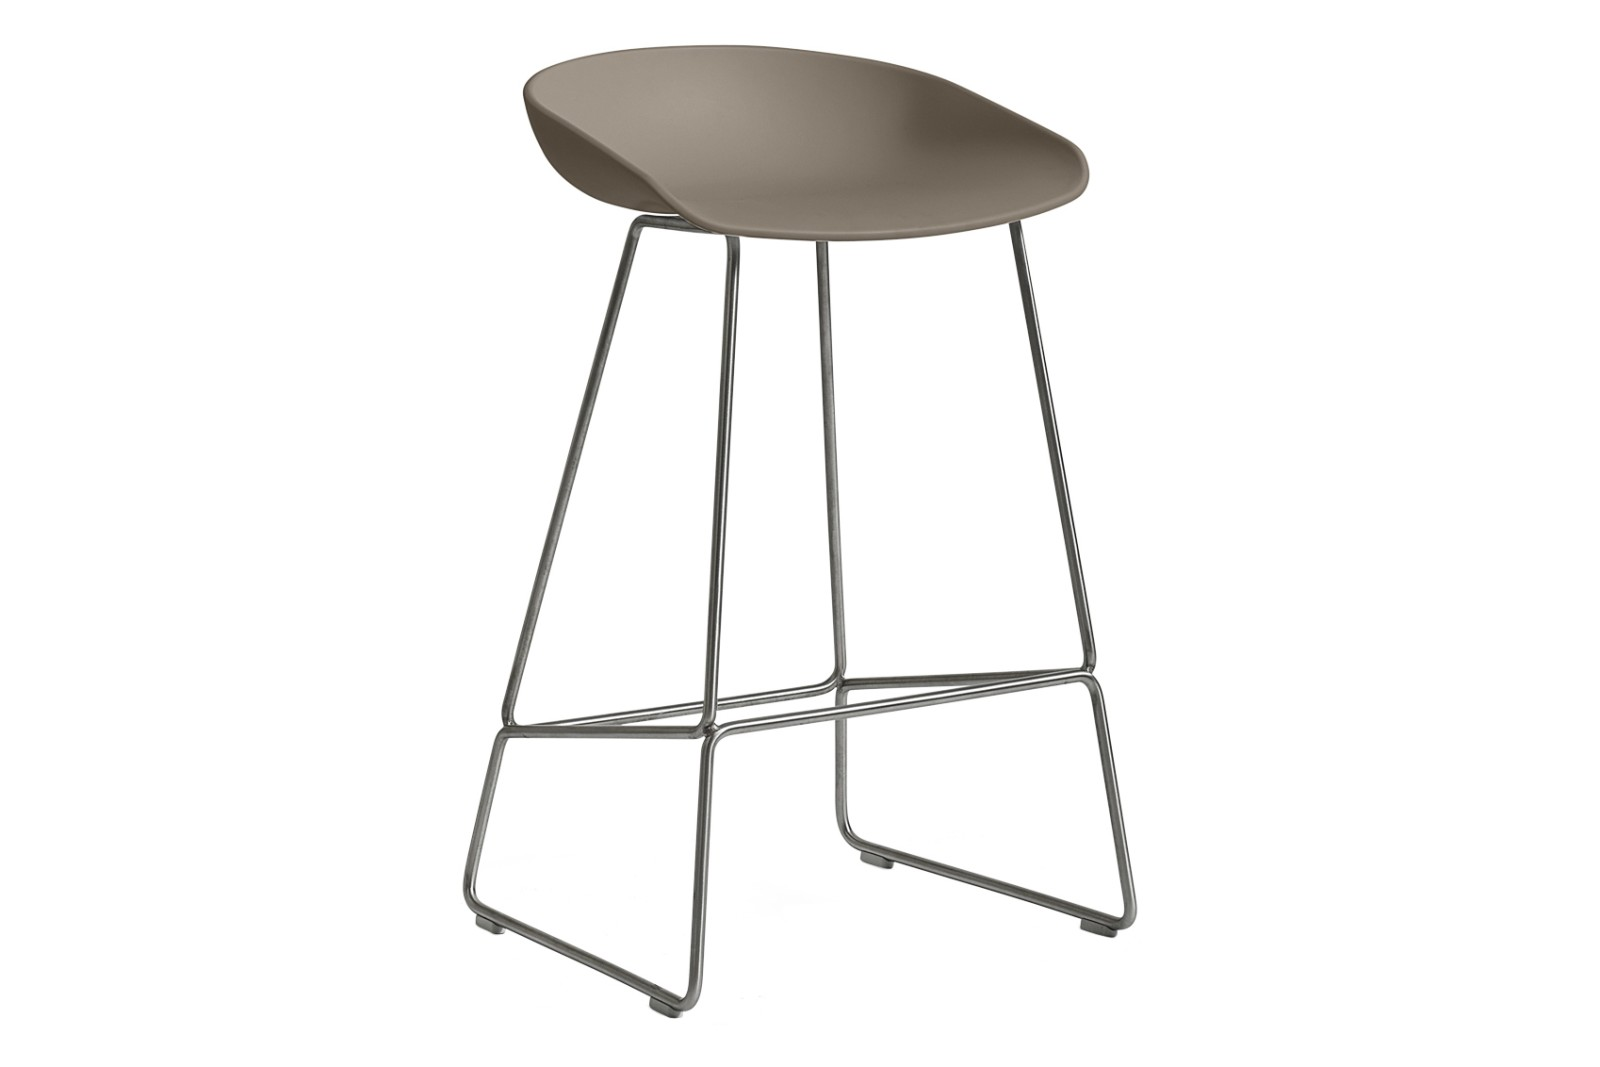 AAS 38 Low Stool Metal Stainless Steel, Plastic Khaki